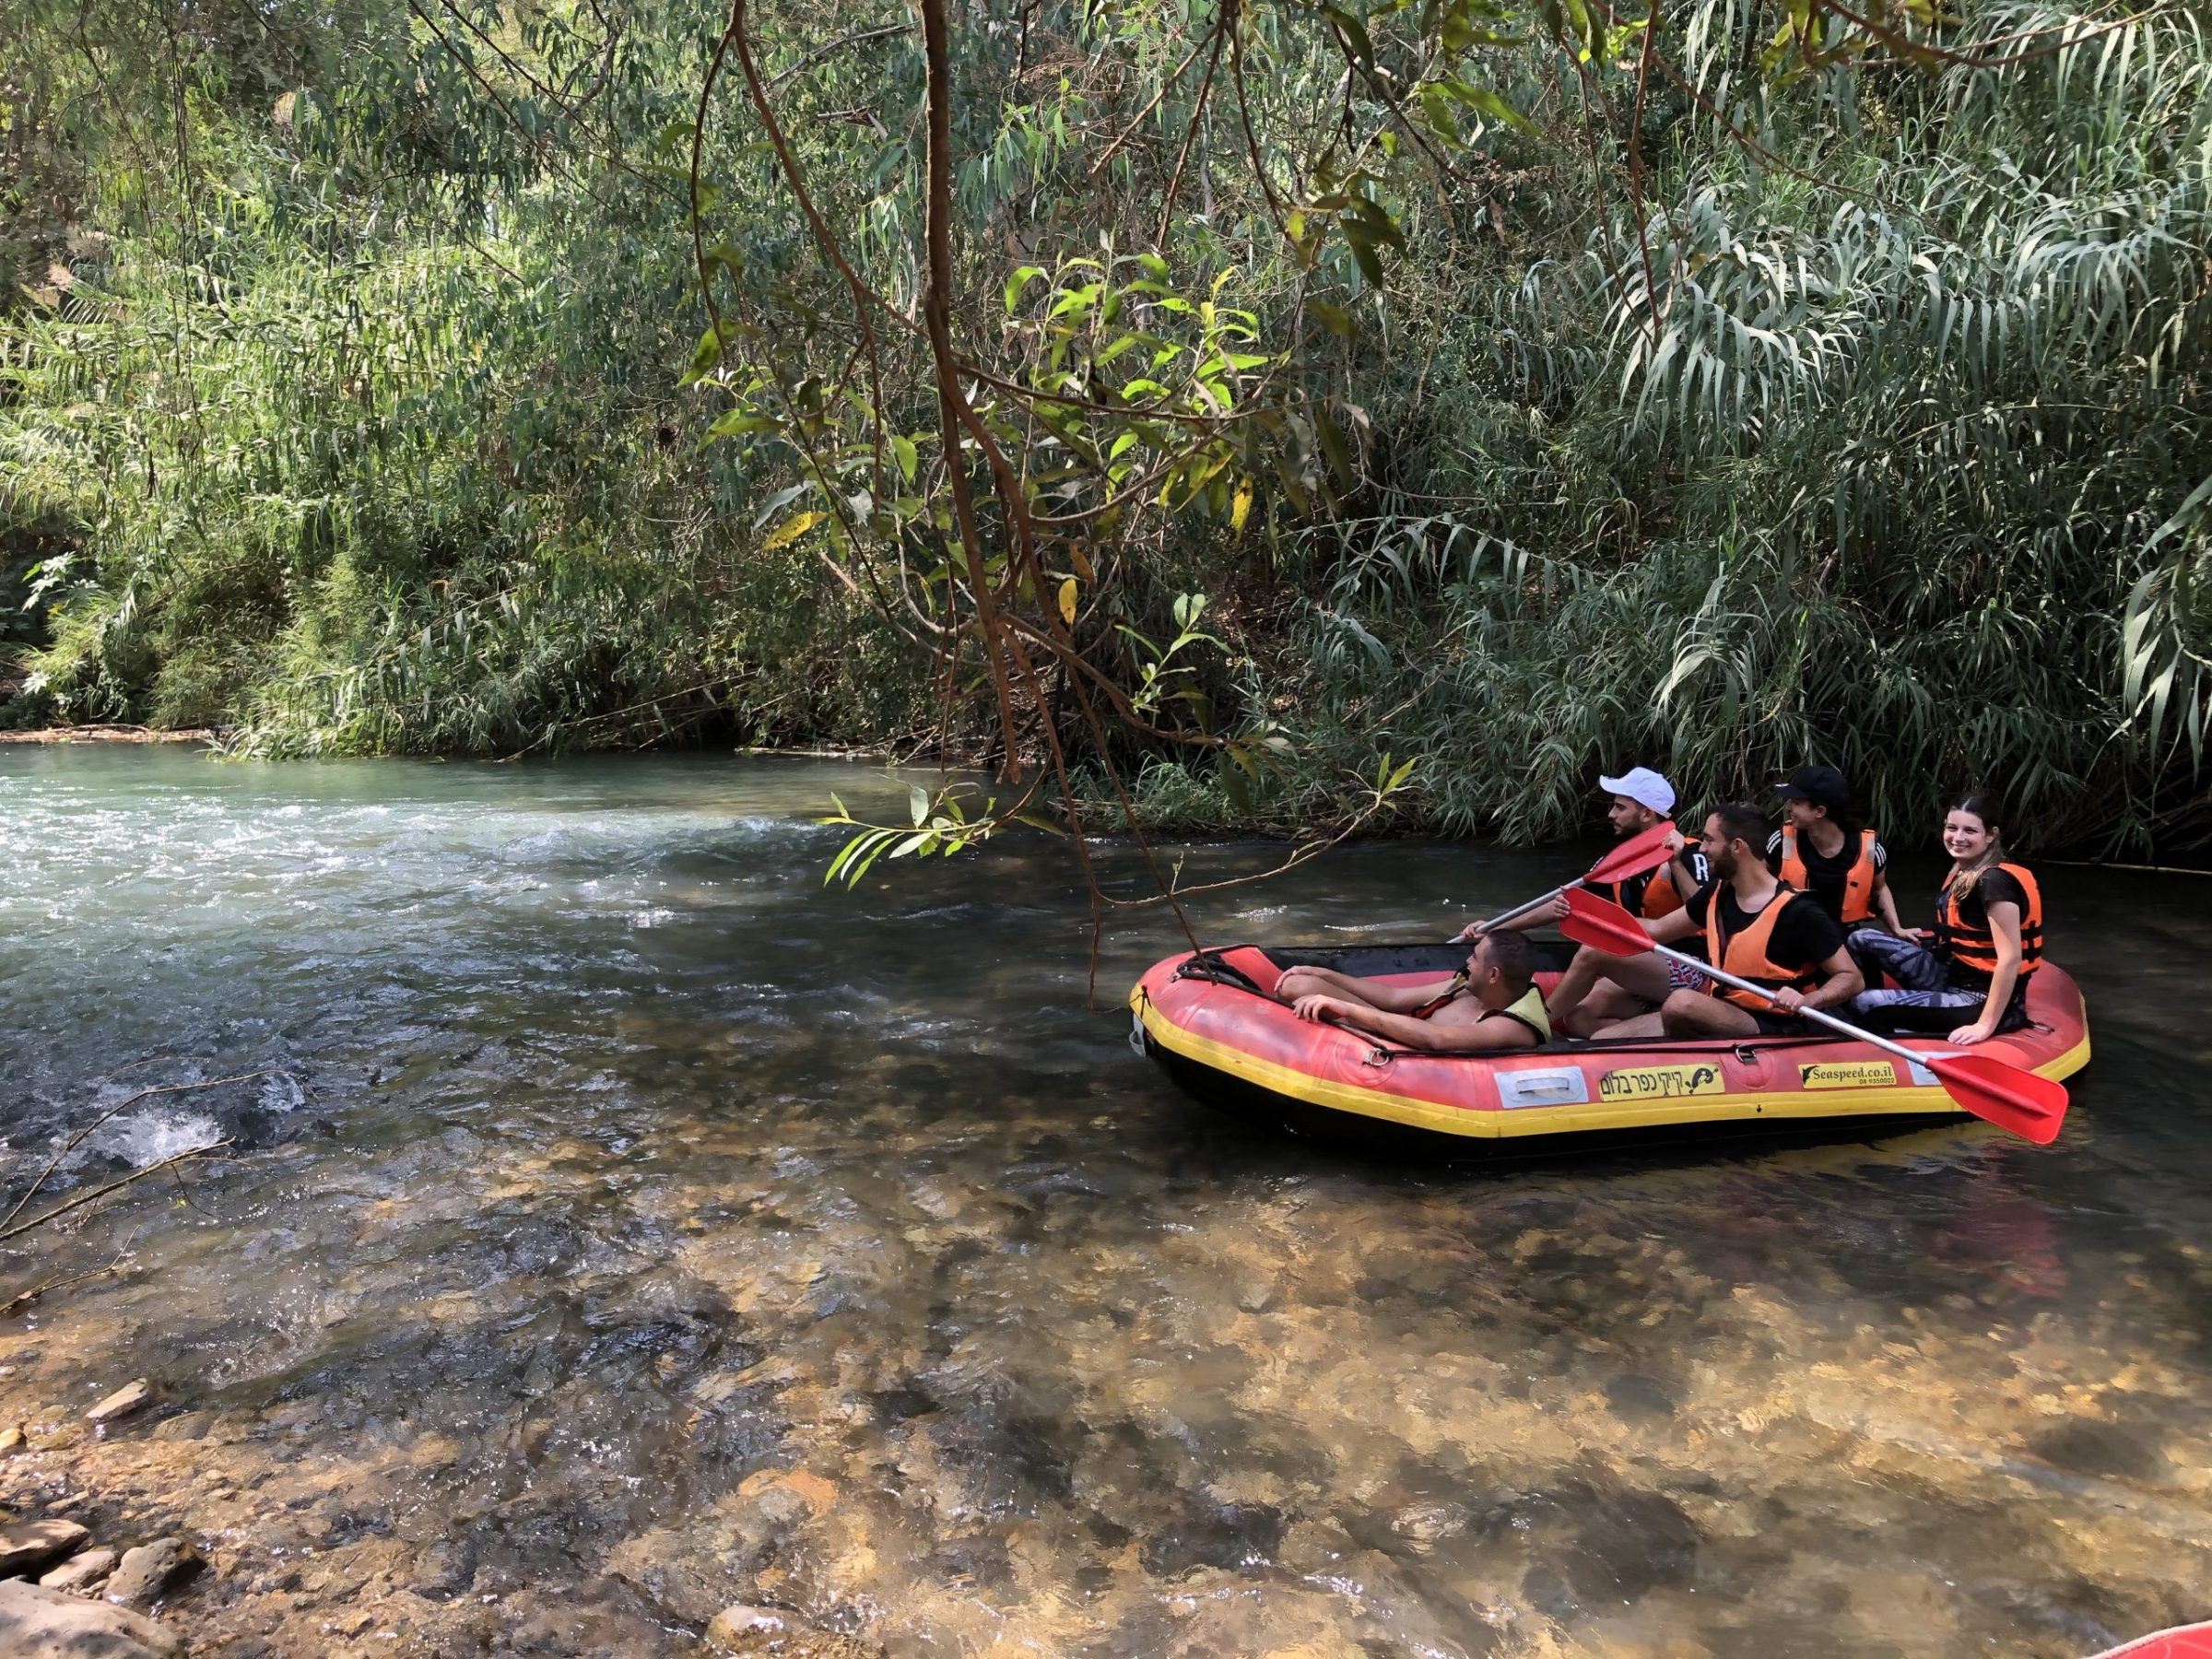 Vacation in Upper Galilee